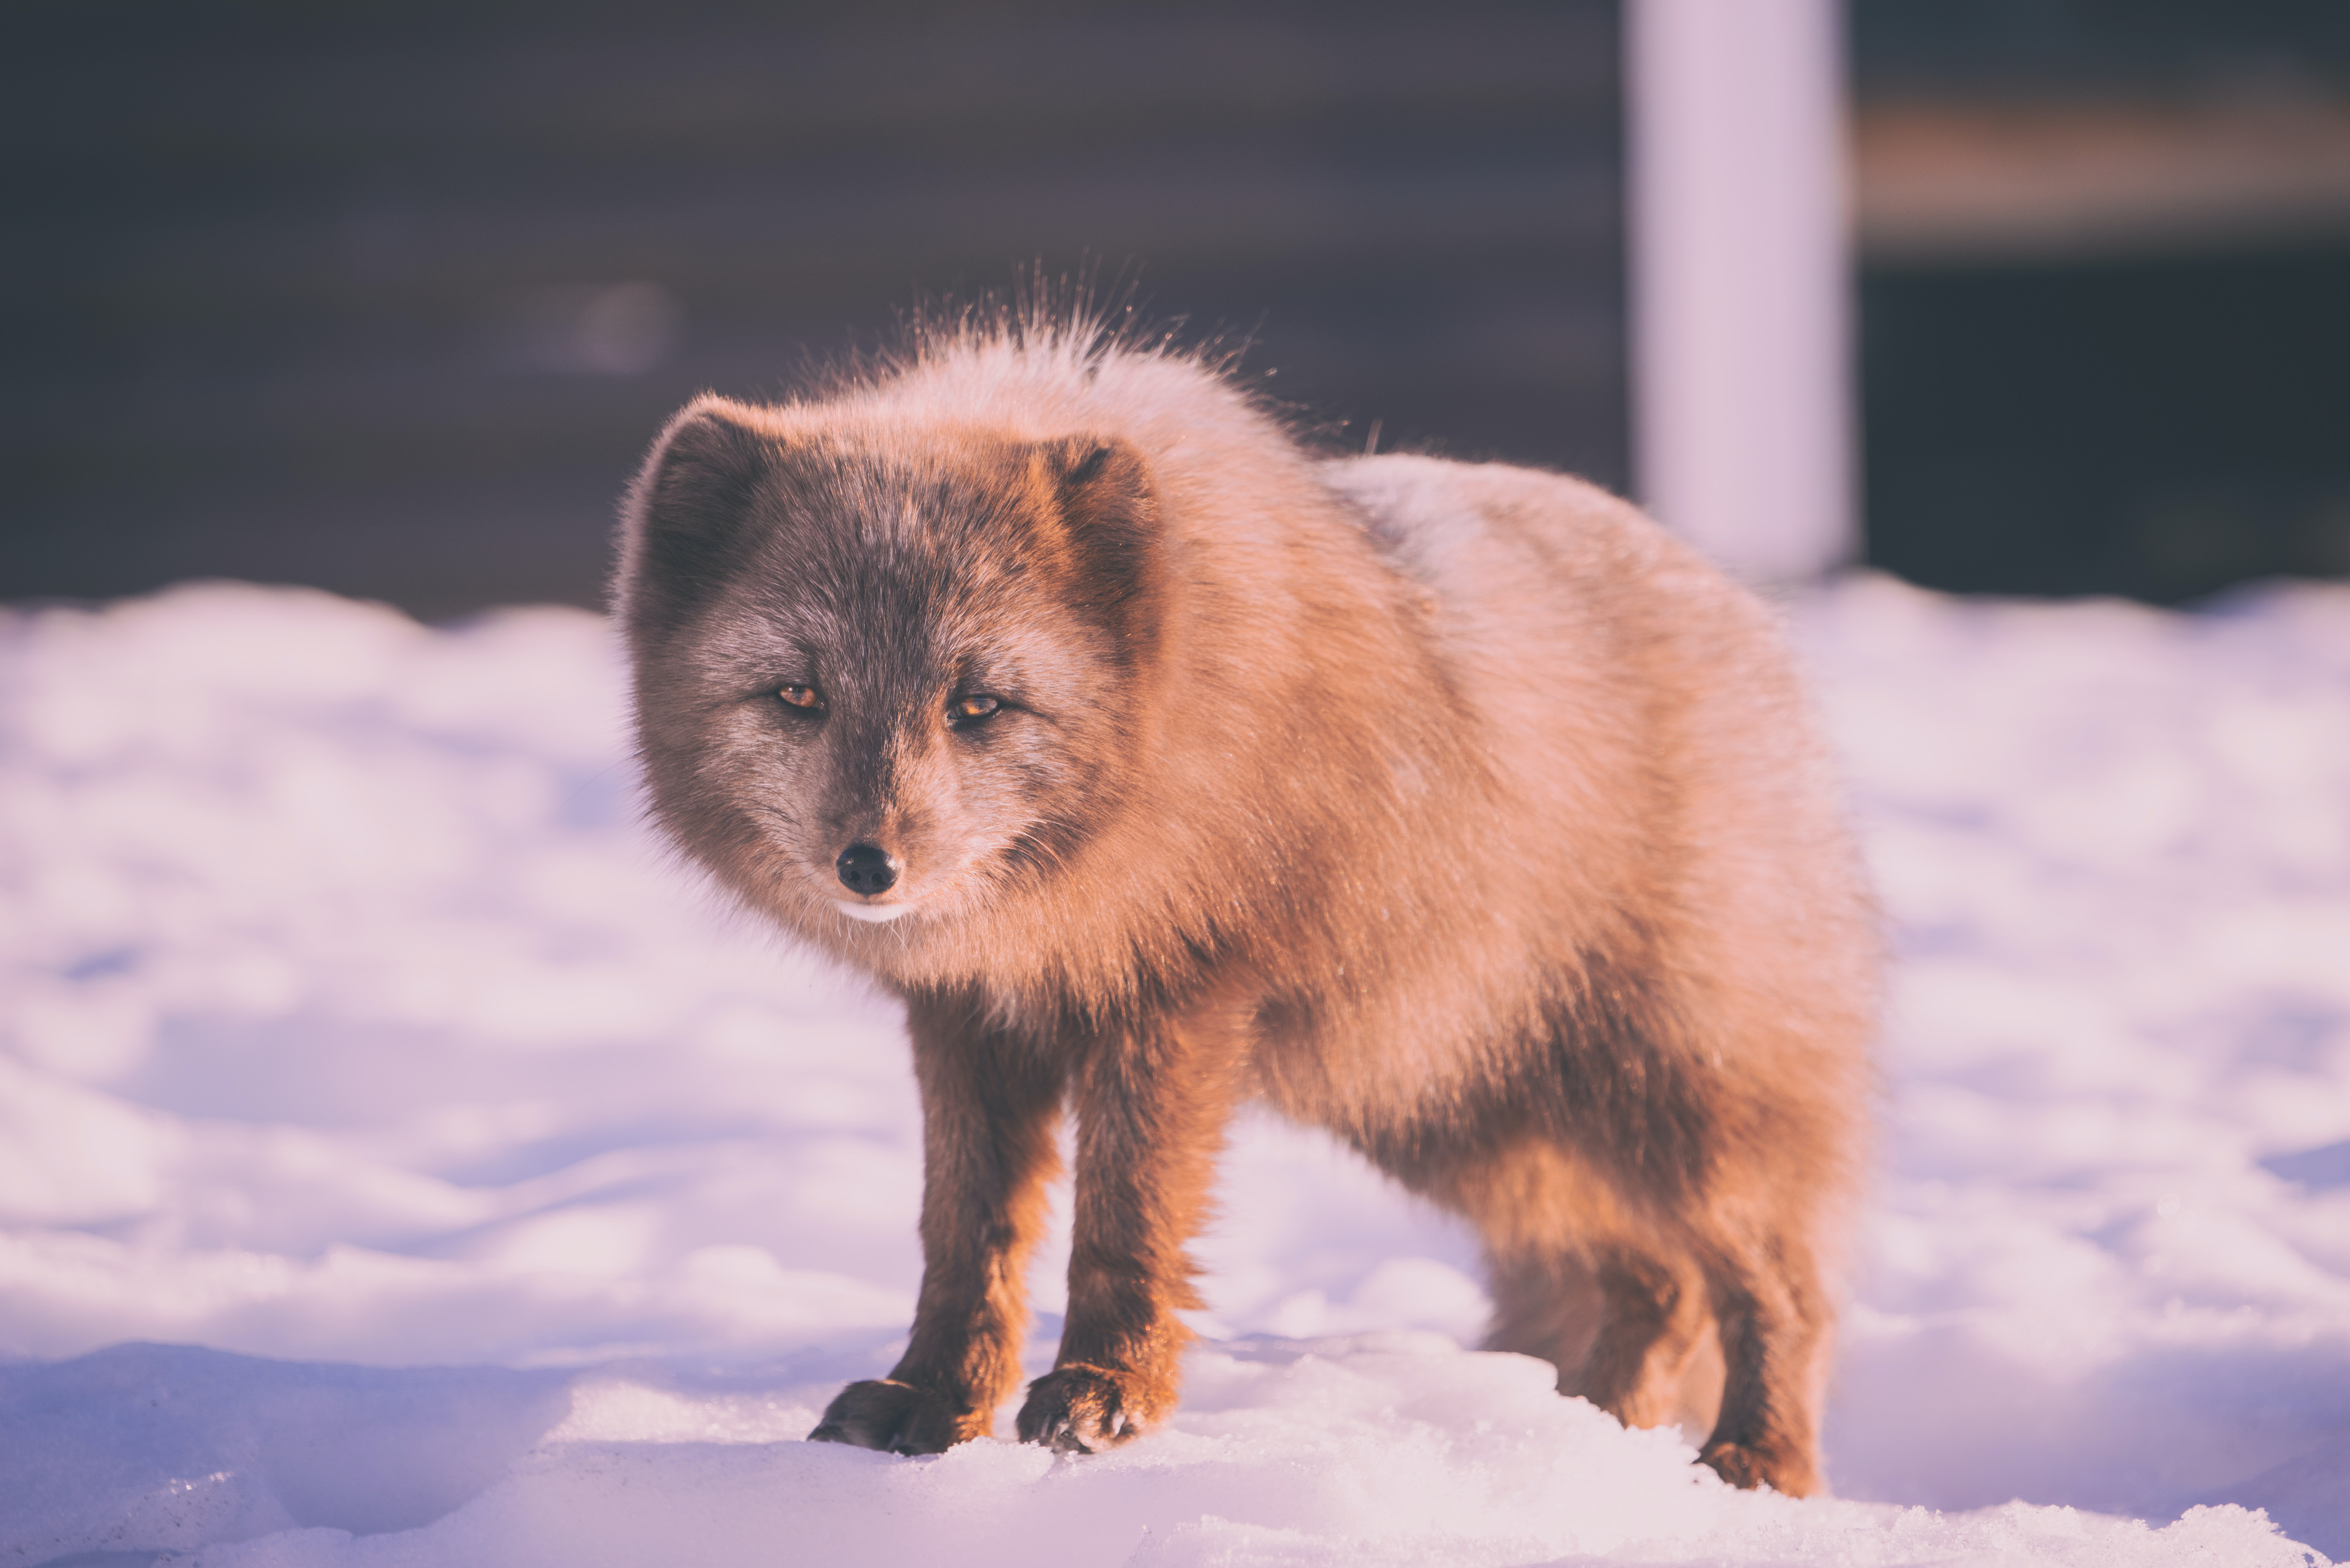 Lonely arctic fox stands on a pile of snow in the winter